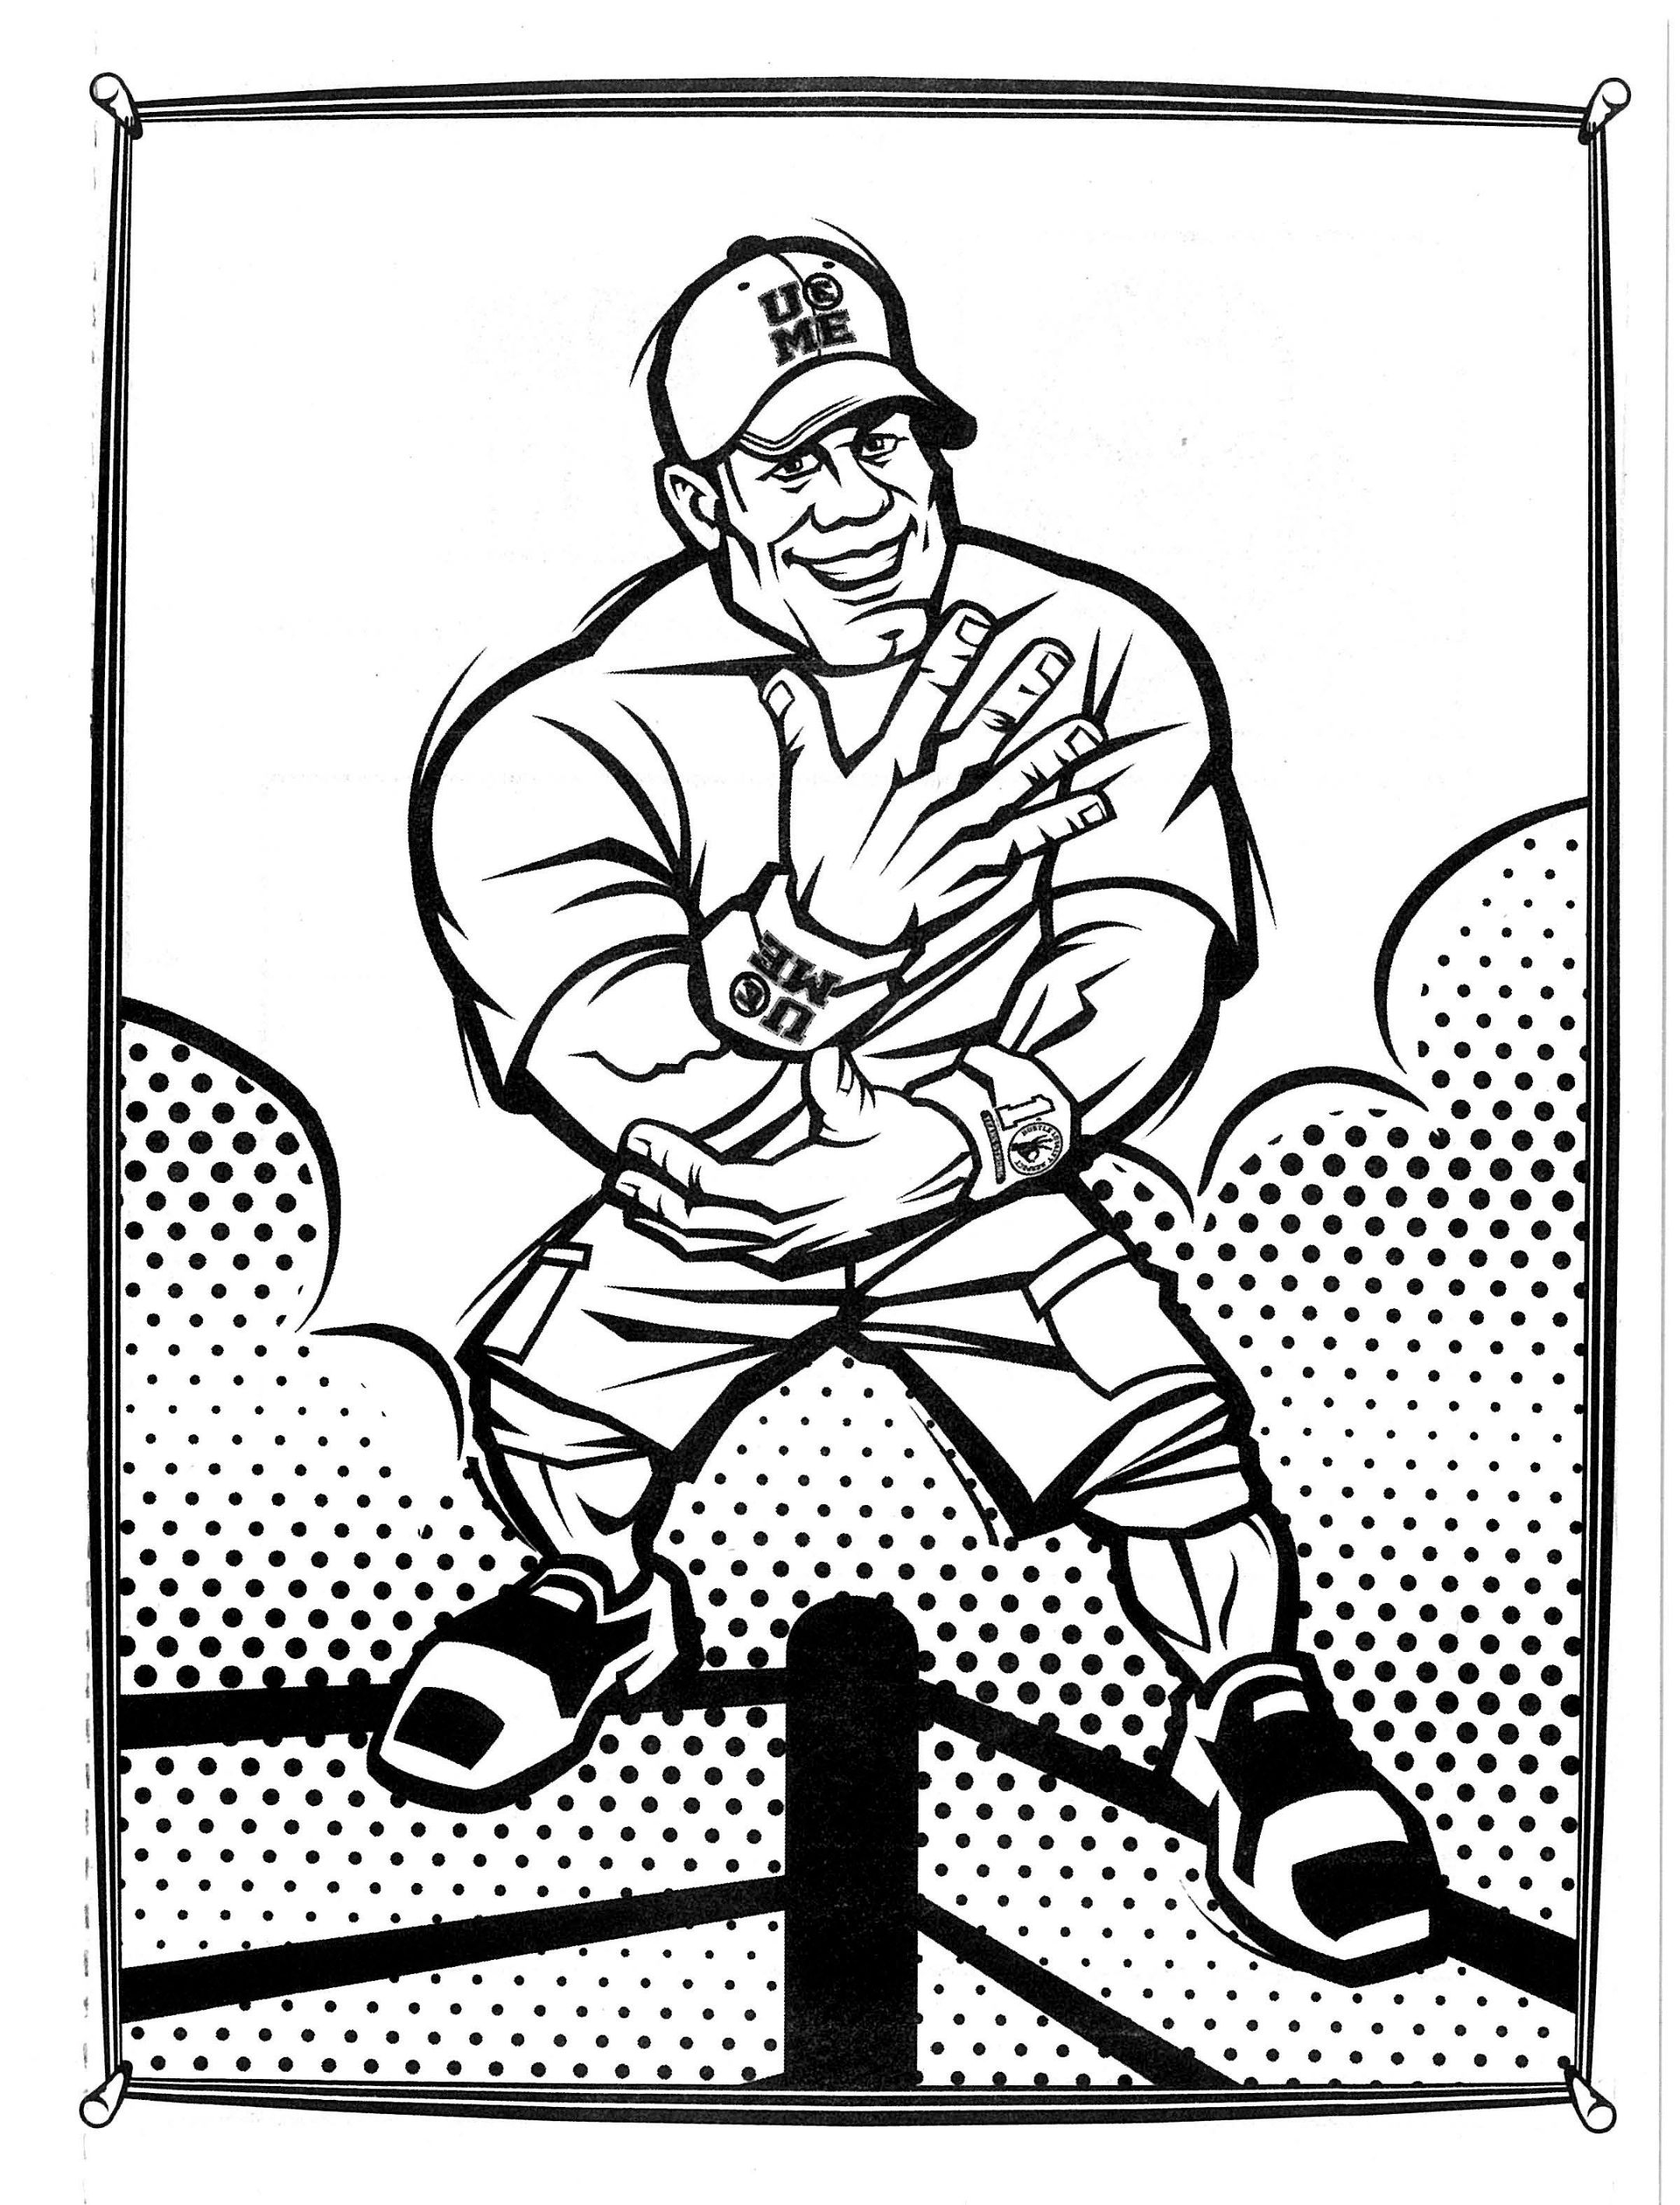 Wwe Super Coloring Activity Book John Cena Wwe Coloring Pages Color Activities John Cena Birthday